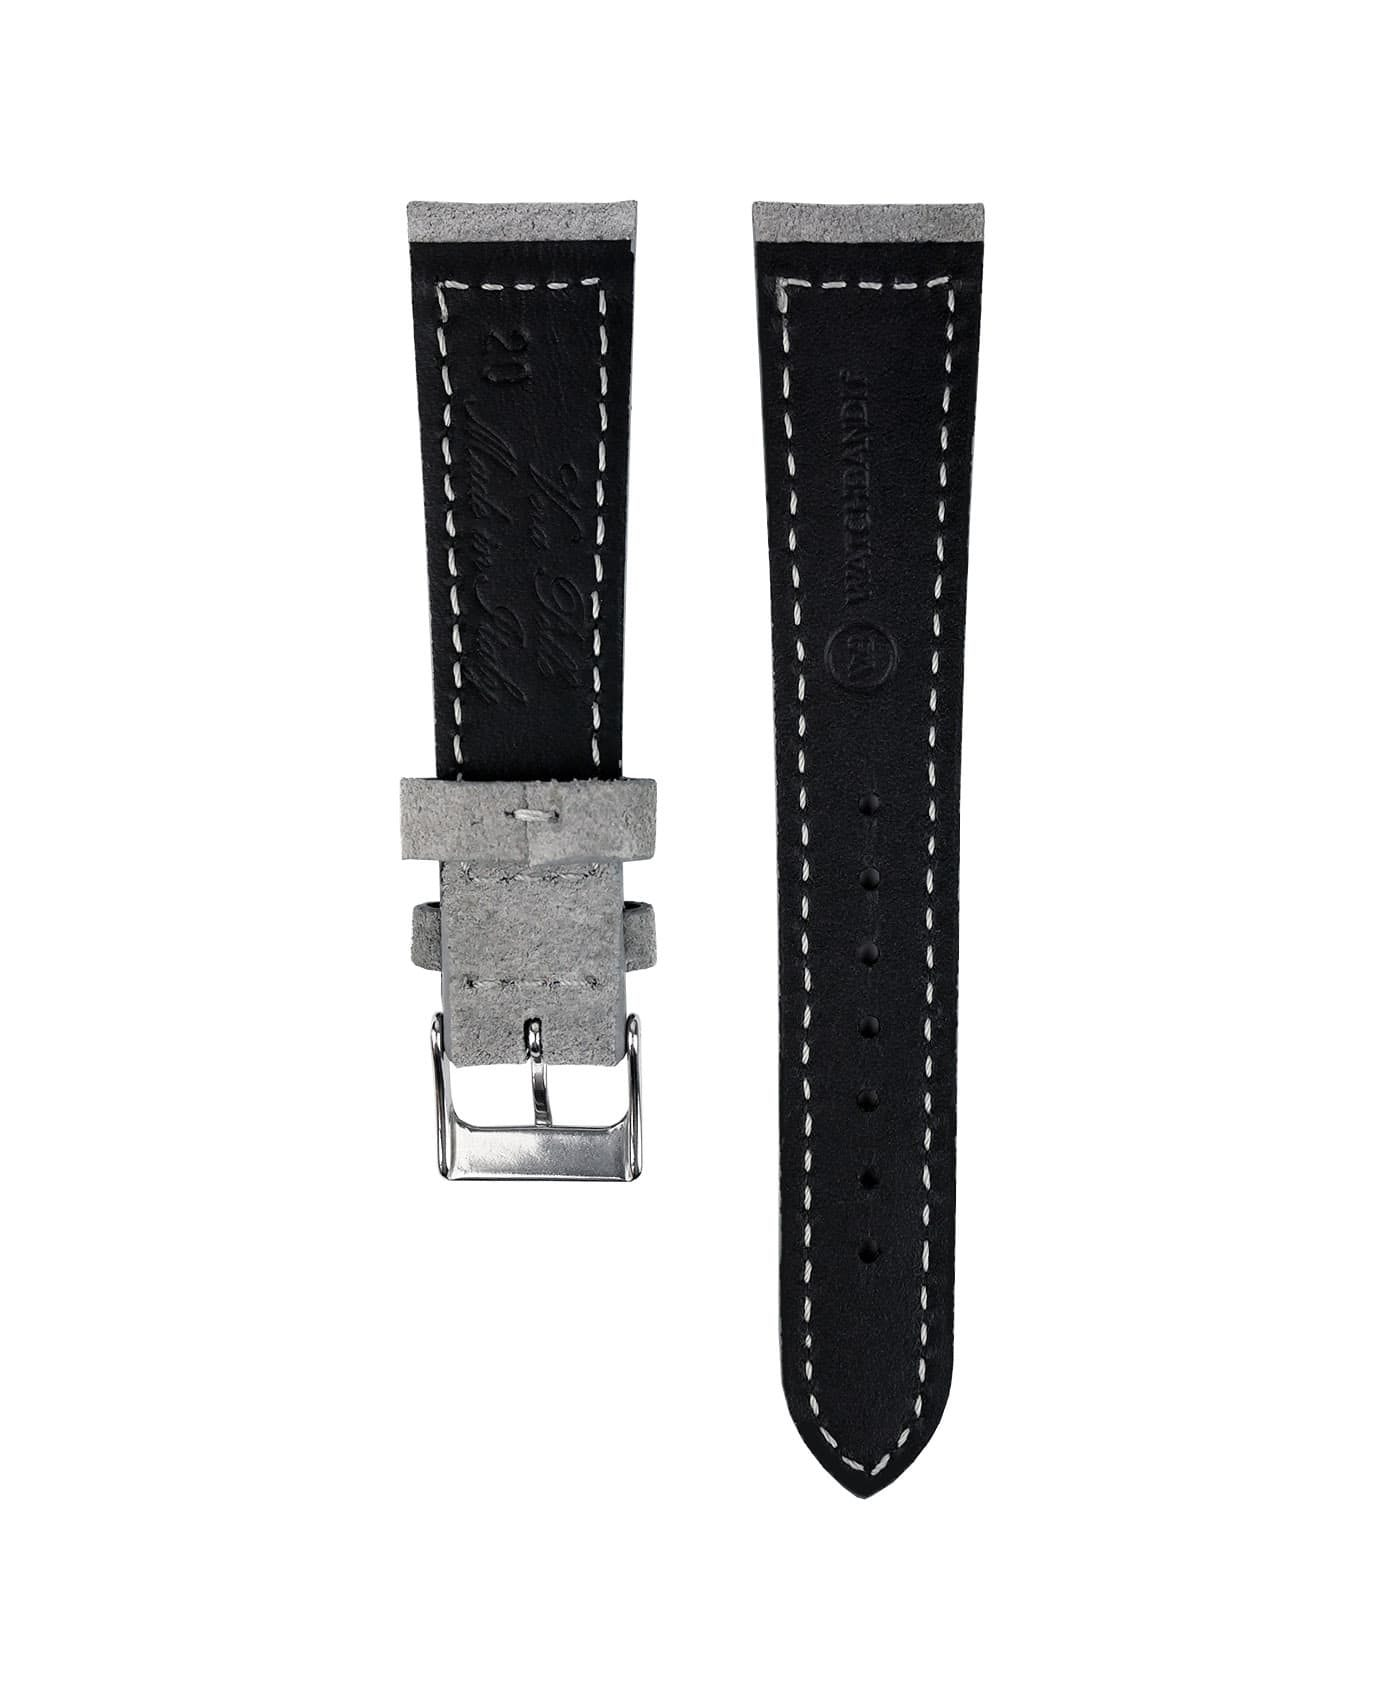 Suede leather strap with side seam_grey_back